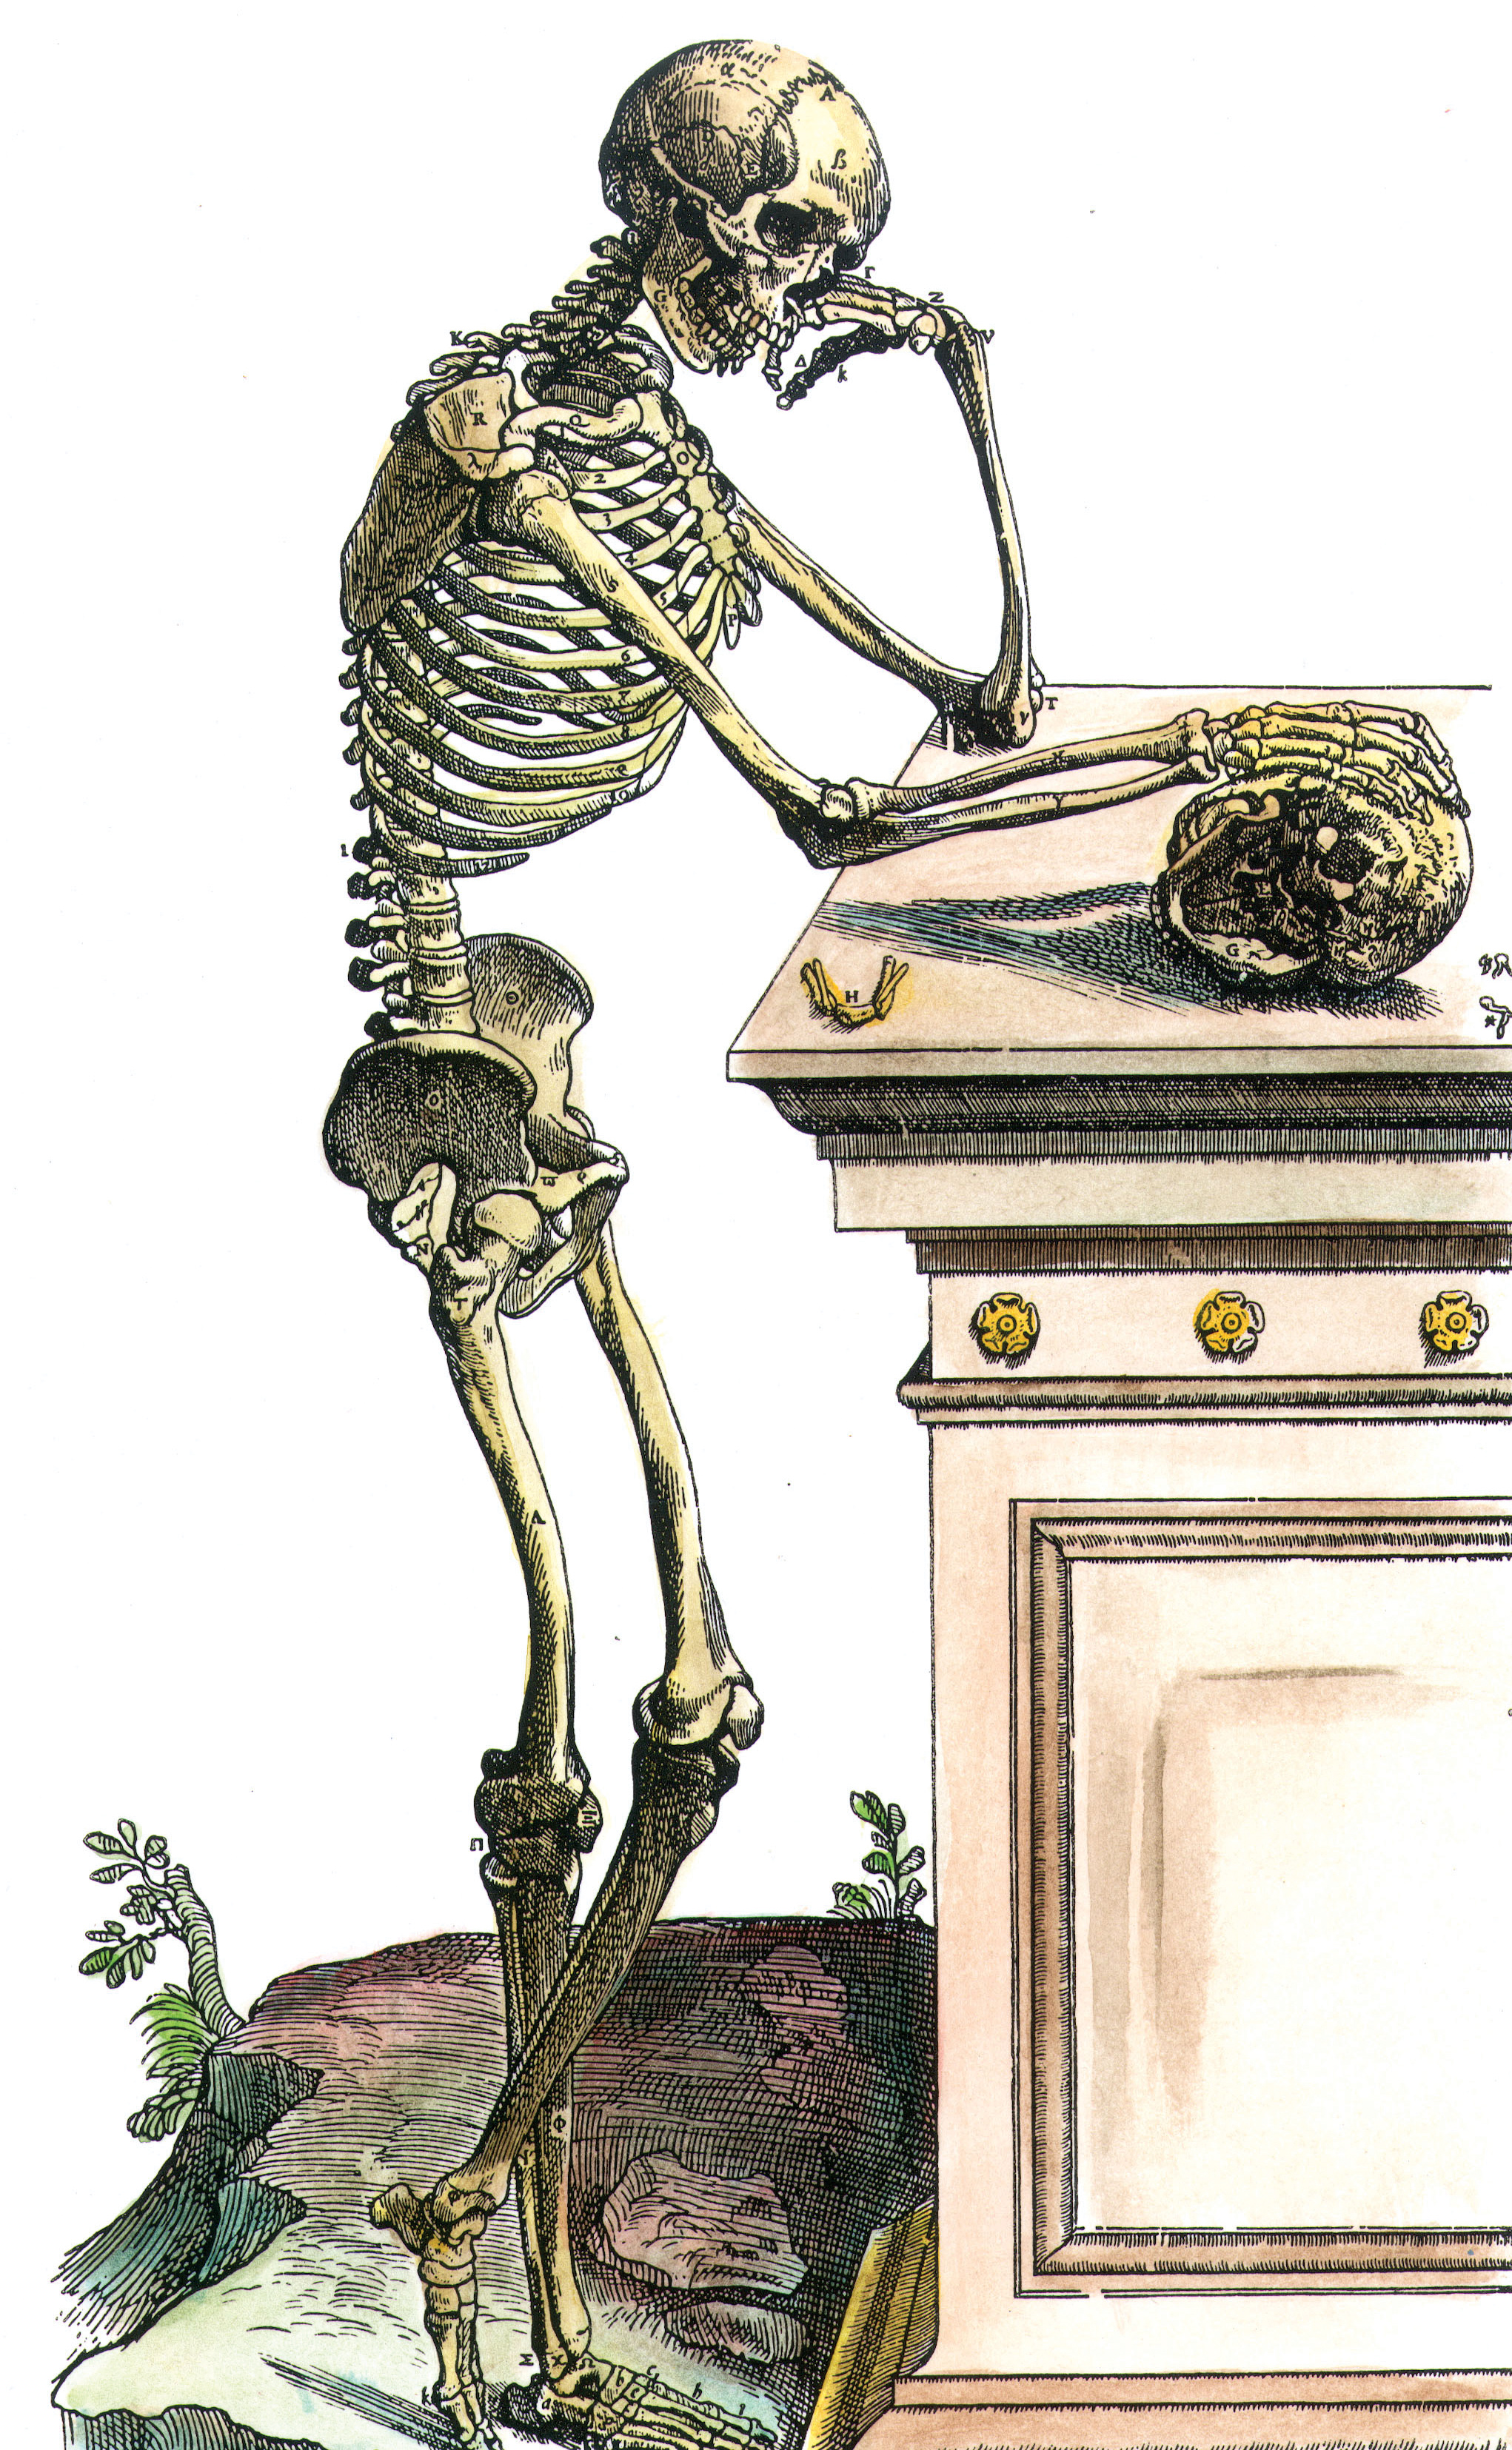 Skeleton contemplating a skull, from Andreas Vesalius' On the Structure of the Human Body, 1543.